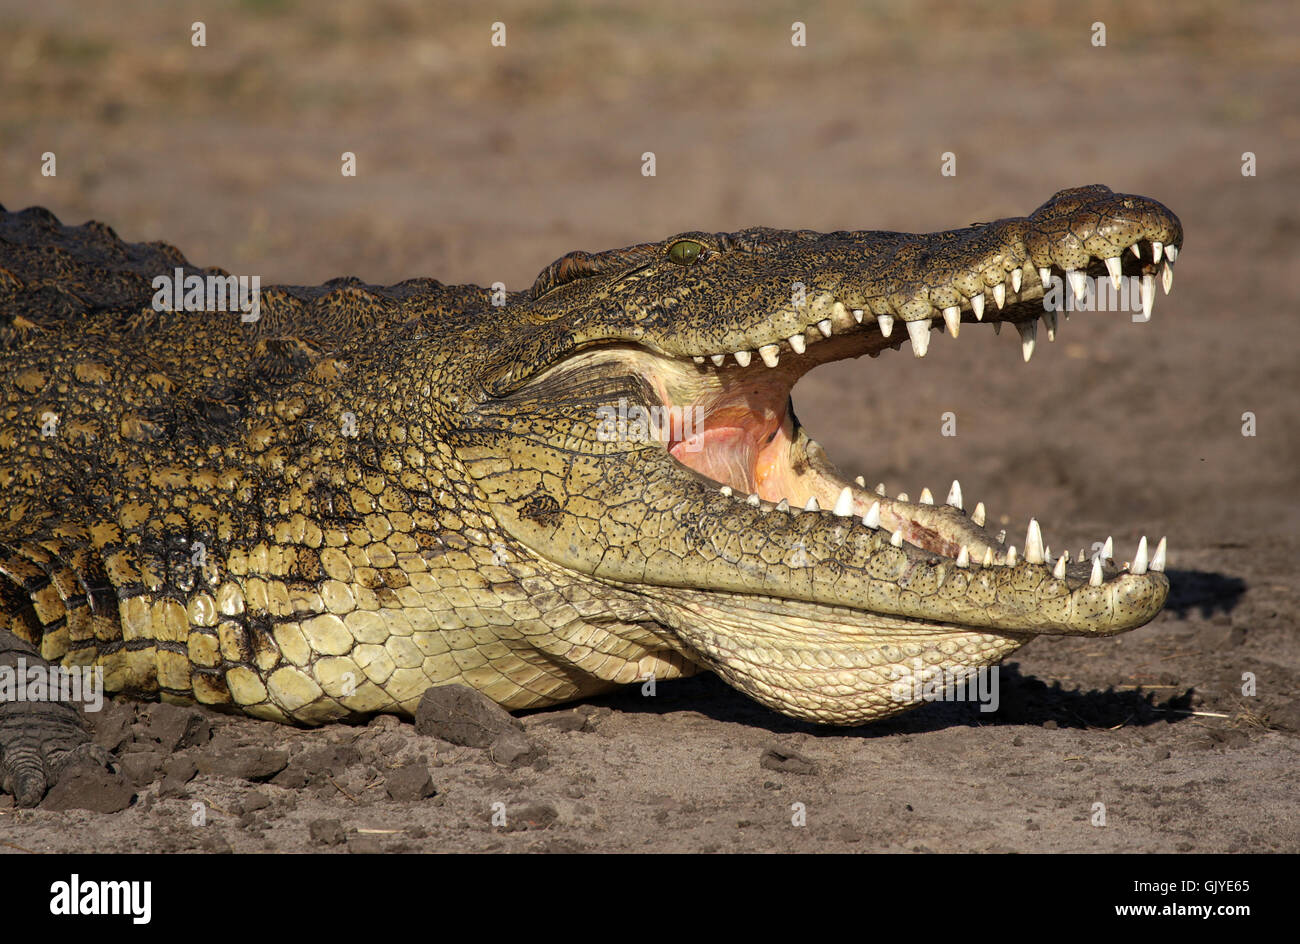 crocodile with its mouth open - Stock Image